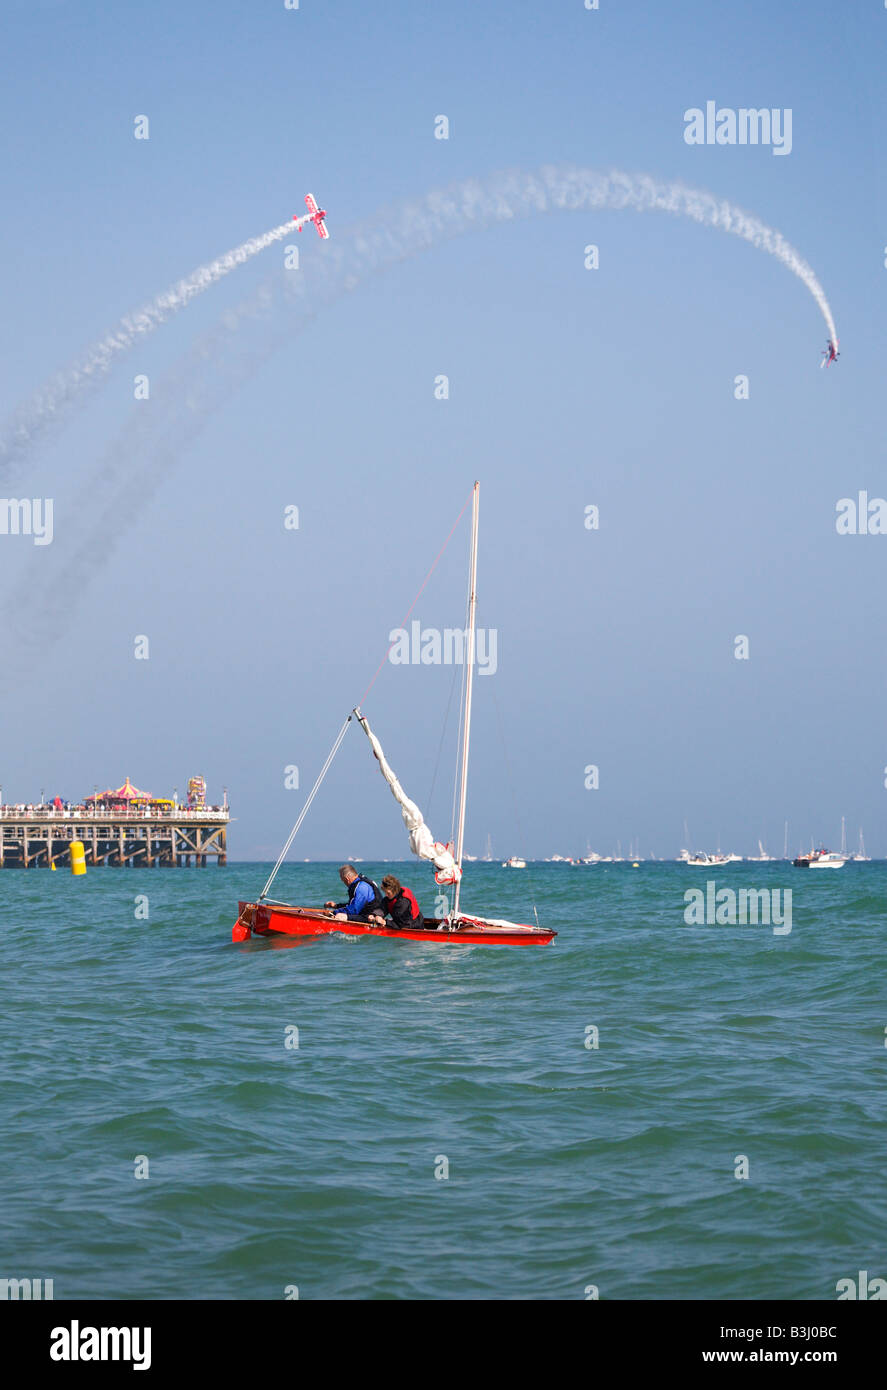 A couple in a sailing boat off Bournemouth beach, during the Bournemouth Air Festival. Bi-plane display over the - Stock Image